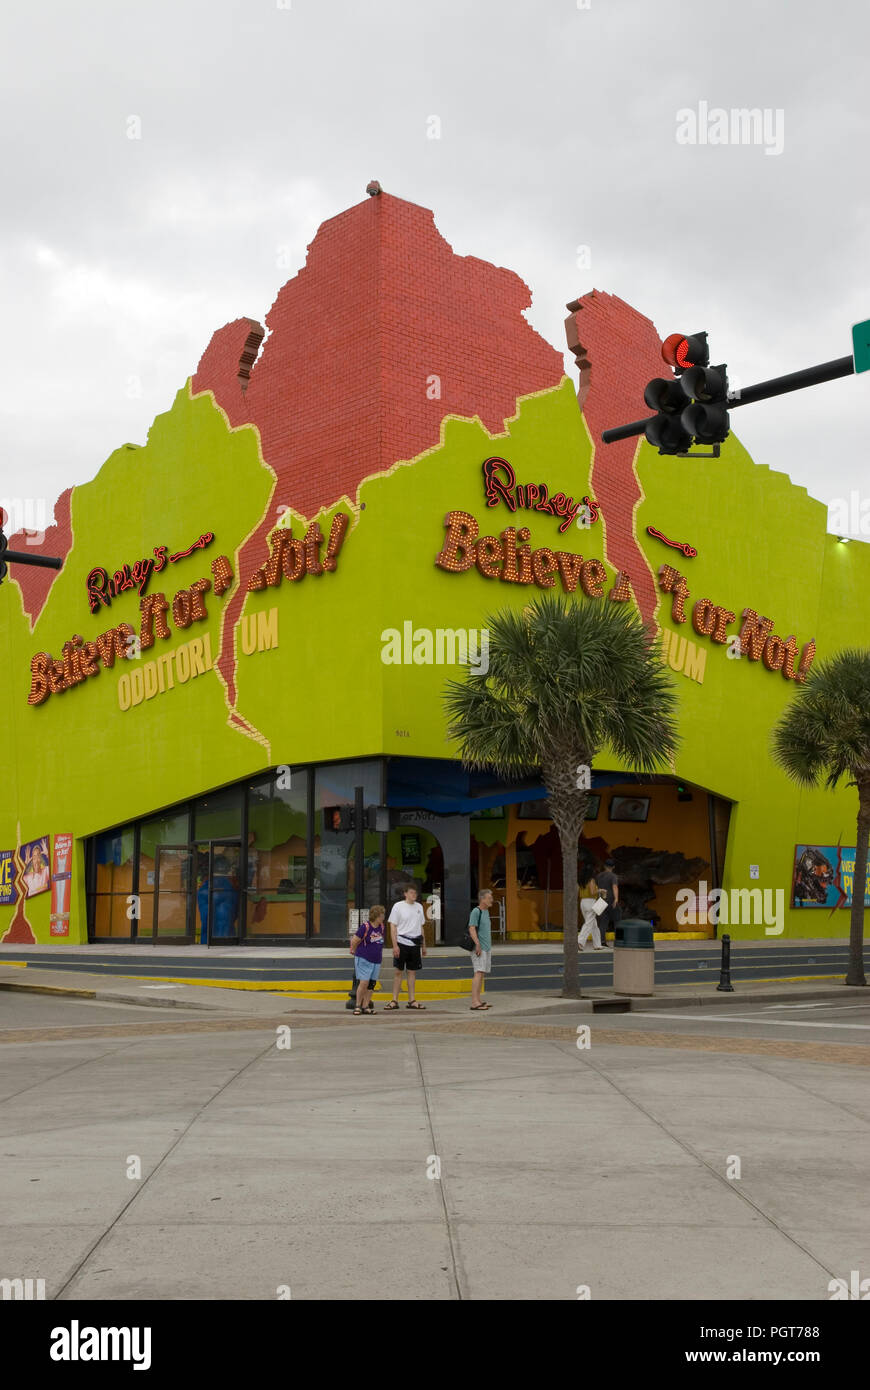 Ripley's Believe It Or Not Museum Myrtle Beach SC USA - Stock Image